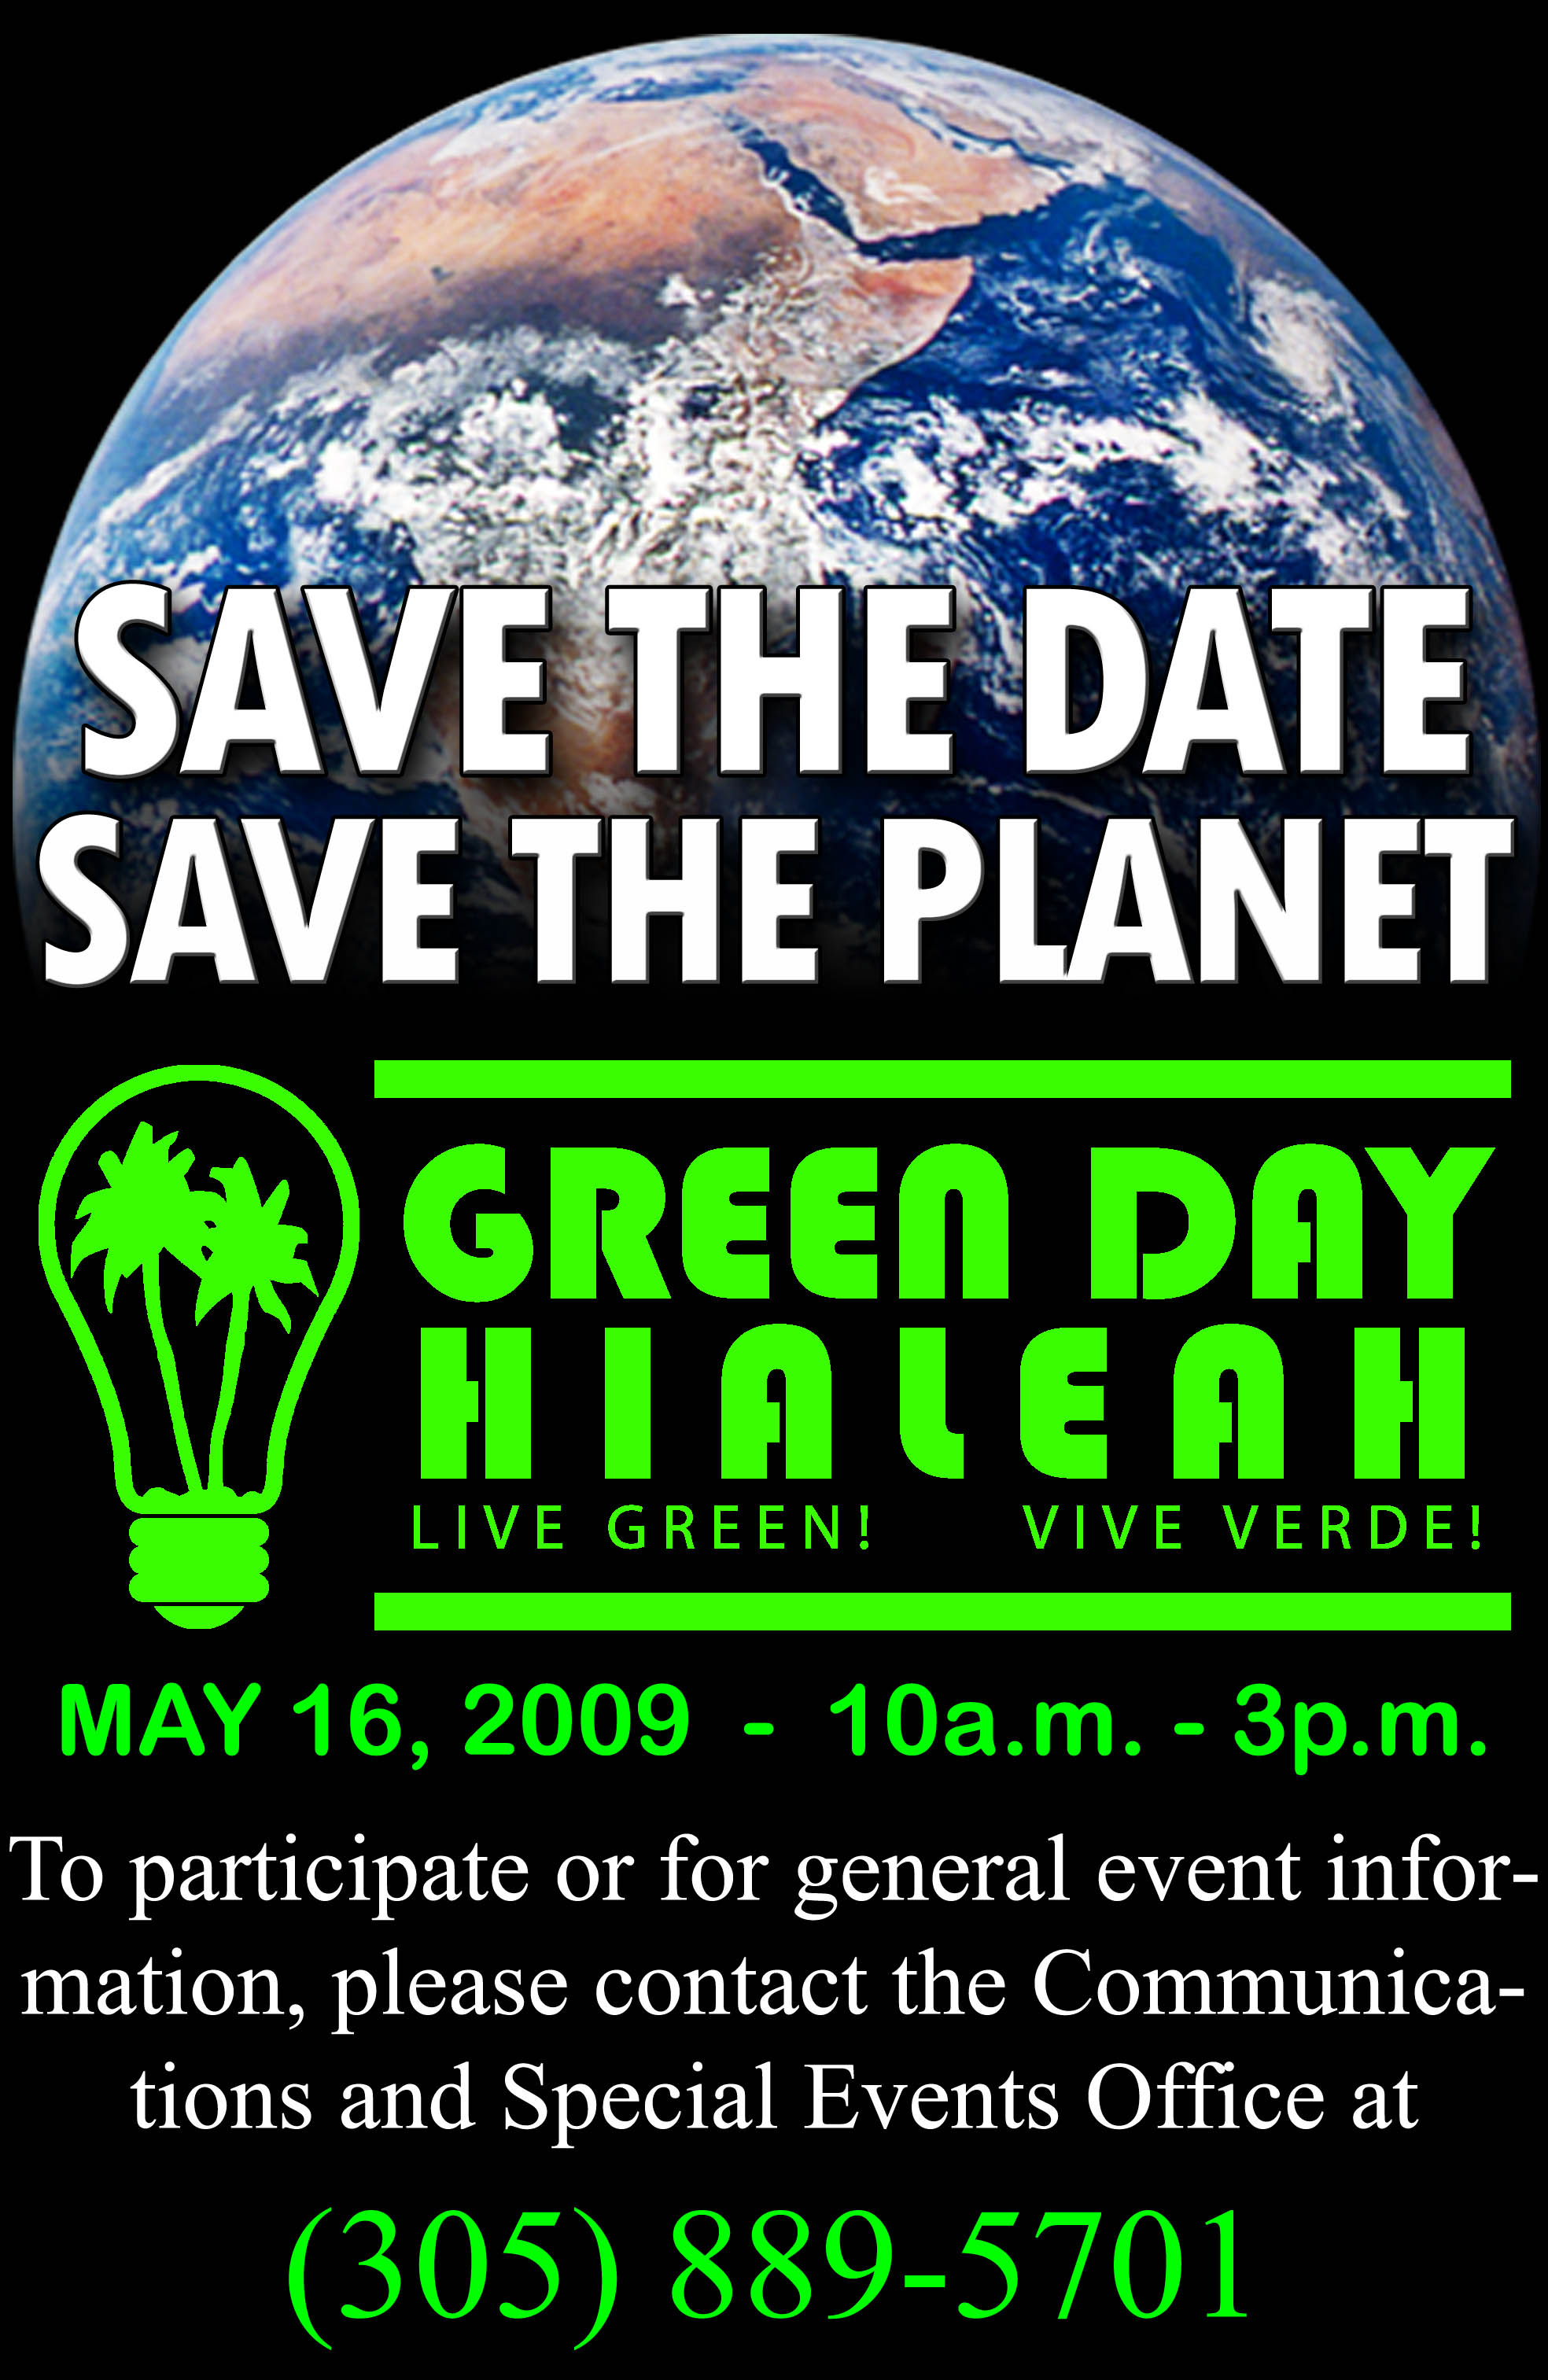 green-day-hialeah-save-the-date